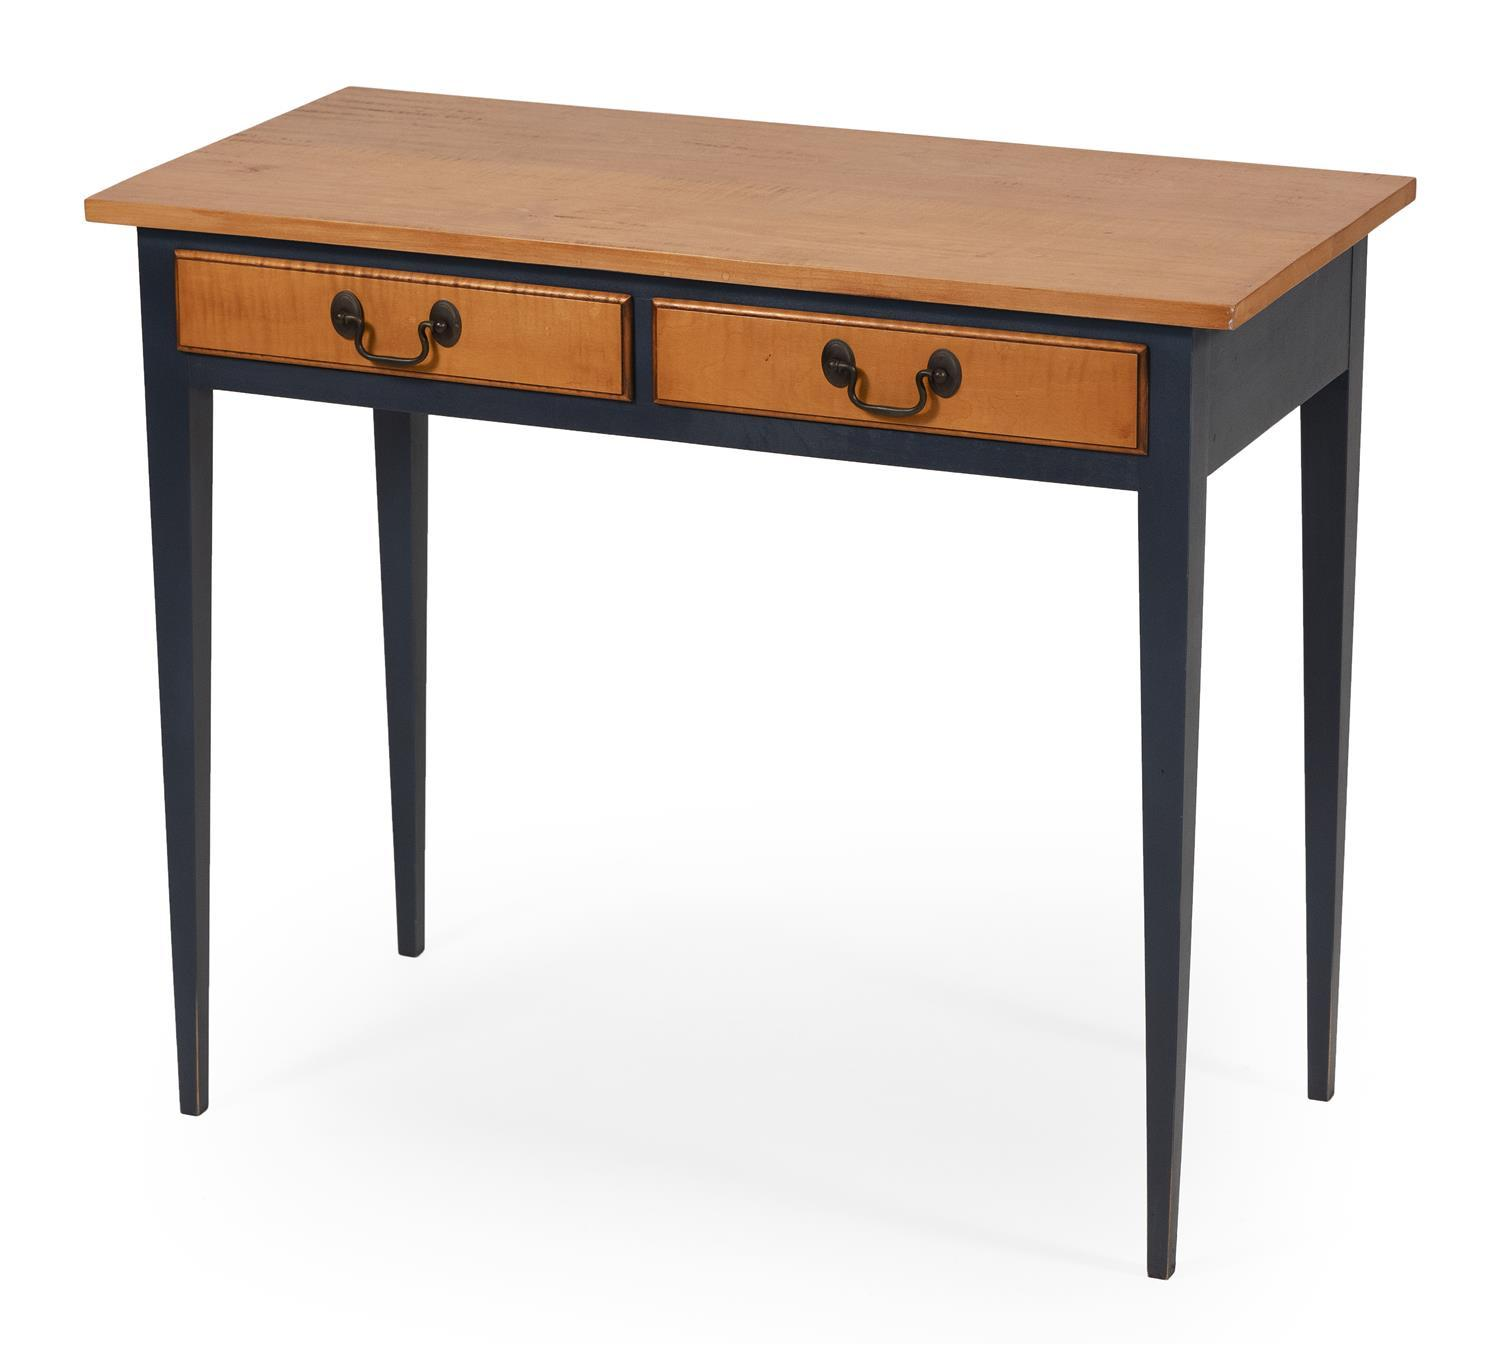 ELDRED WHEELER DIMINUTIVE SERVING TABLE Maple top with traces of tigering. Two half drawers with brass bail handles. Blue-painted ba...